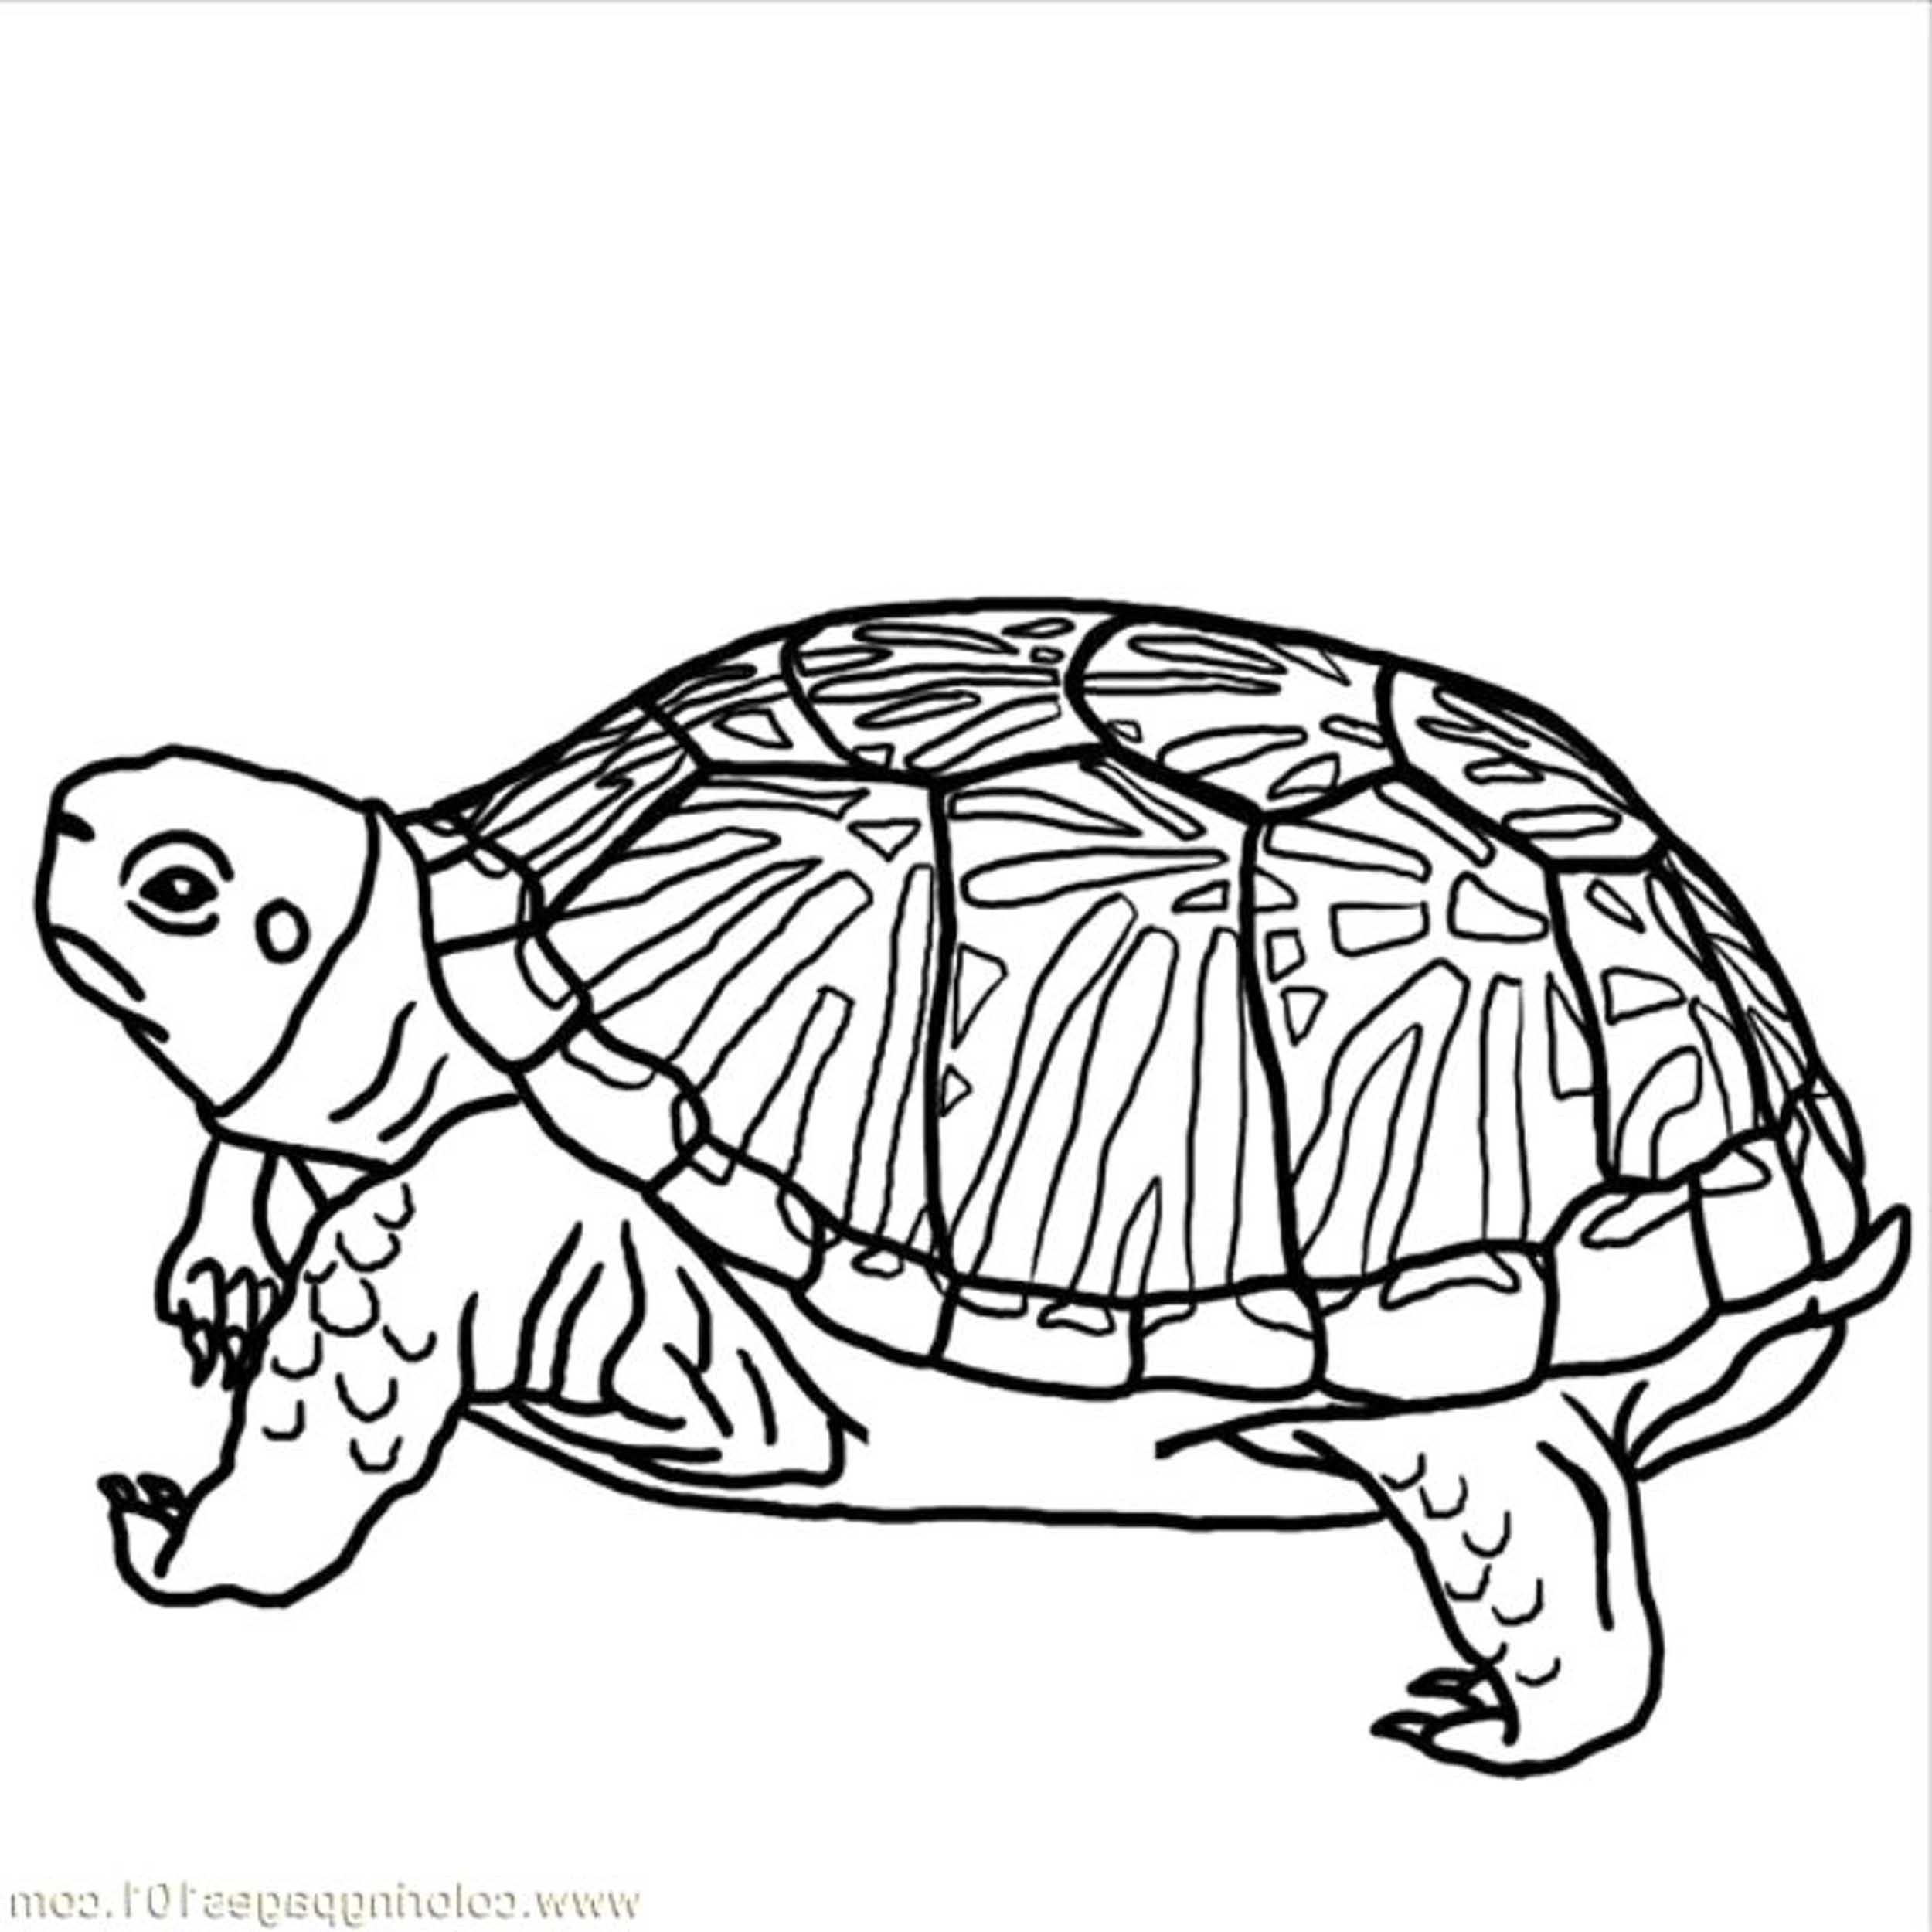 turtles colouring coloring pages turtles free printable coloring pages turtles colouring